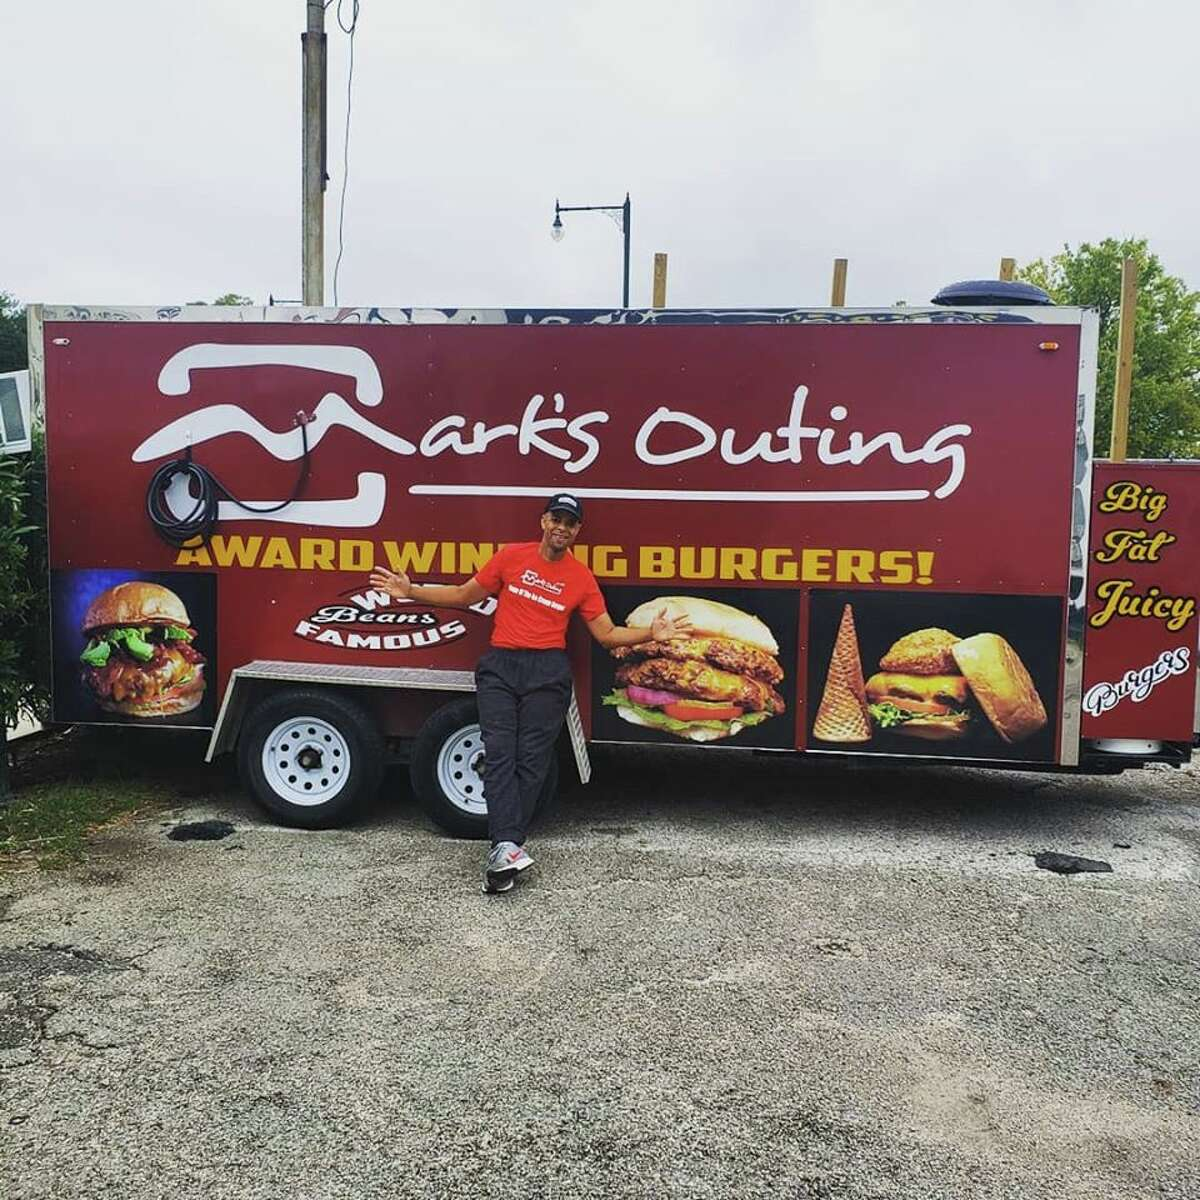 Mark's Outing restaurant is looking to bring its burgers to a corner near you with its new food truck.